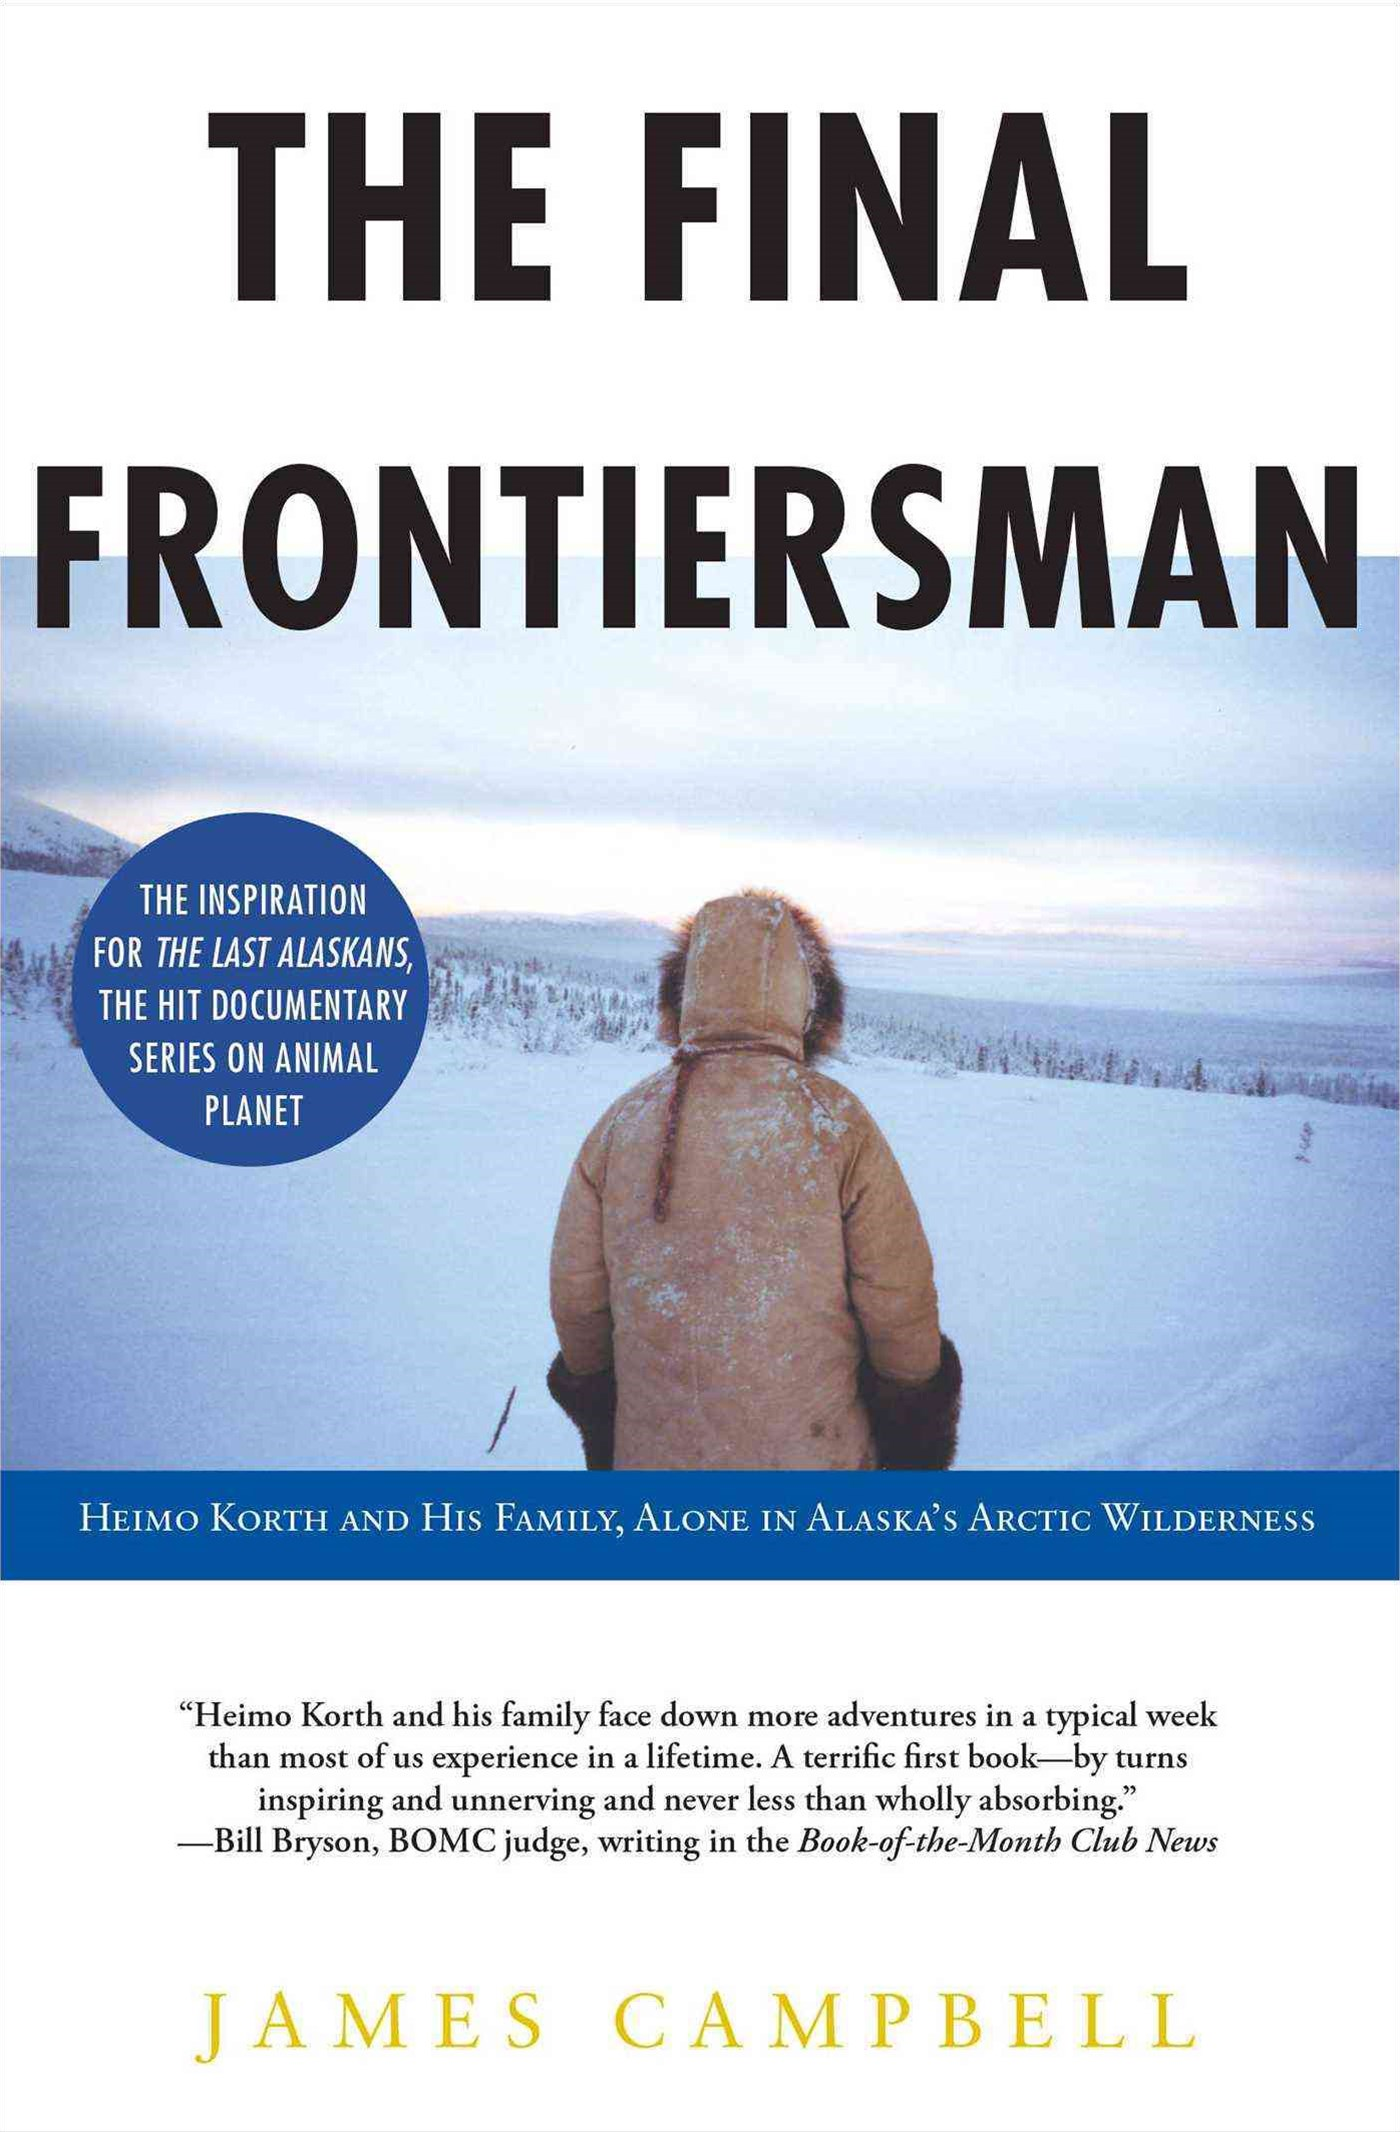 &quote;The Final Frontiersman: Heimo Korth and His Family, Alone in Alaska's Artic Wilderness  &quote;